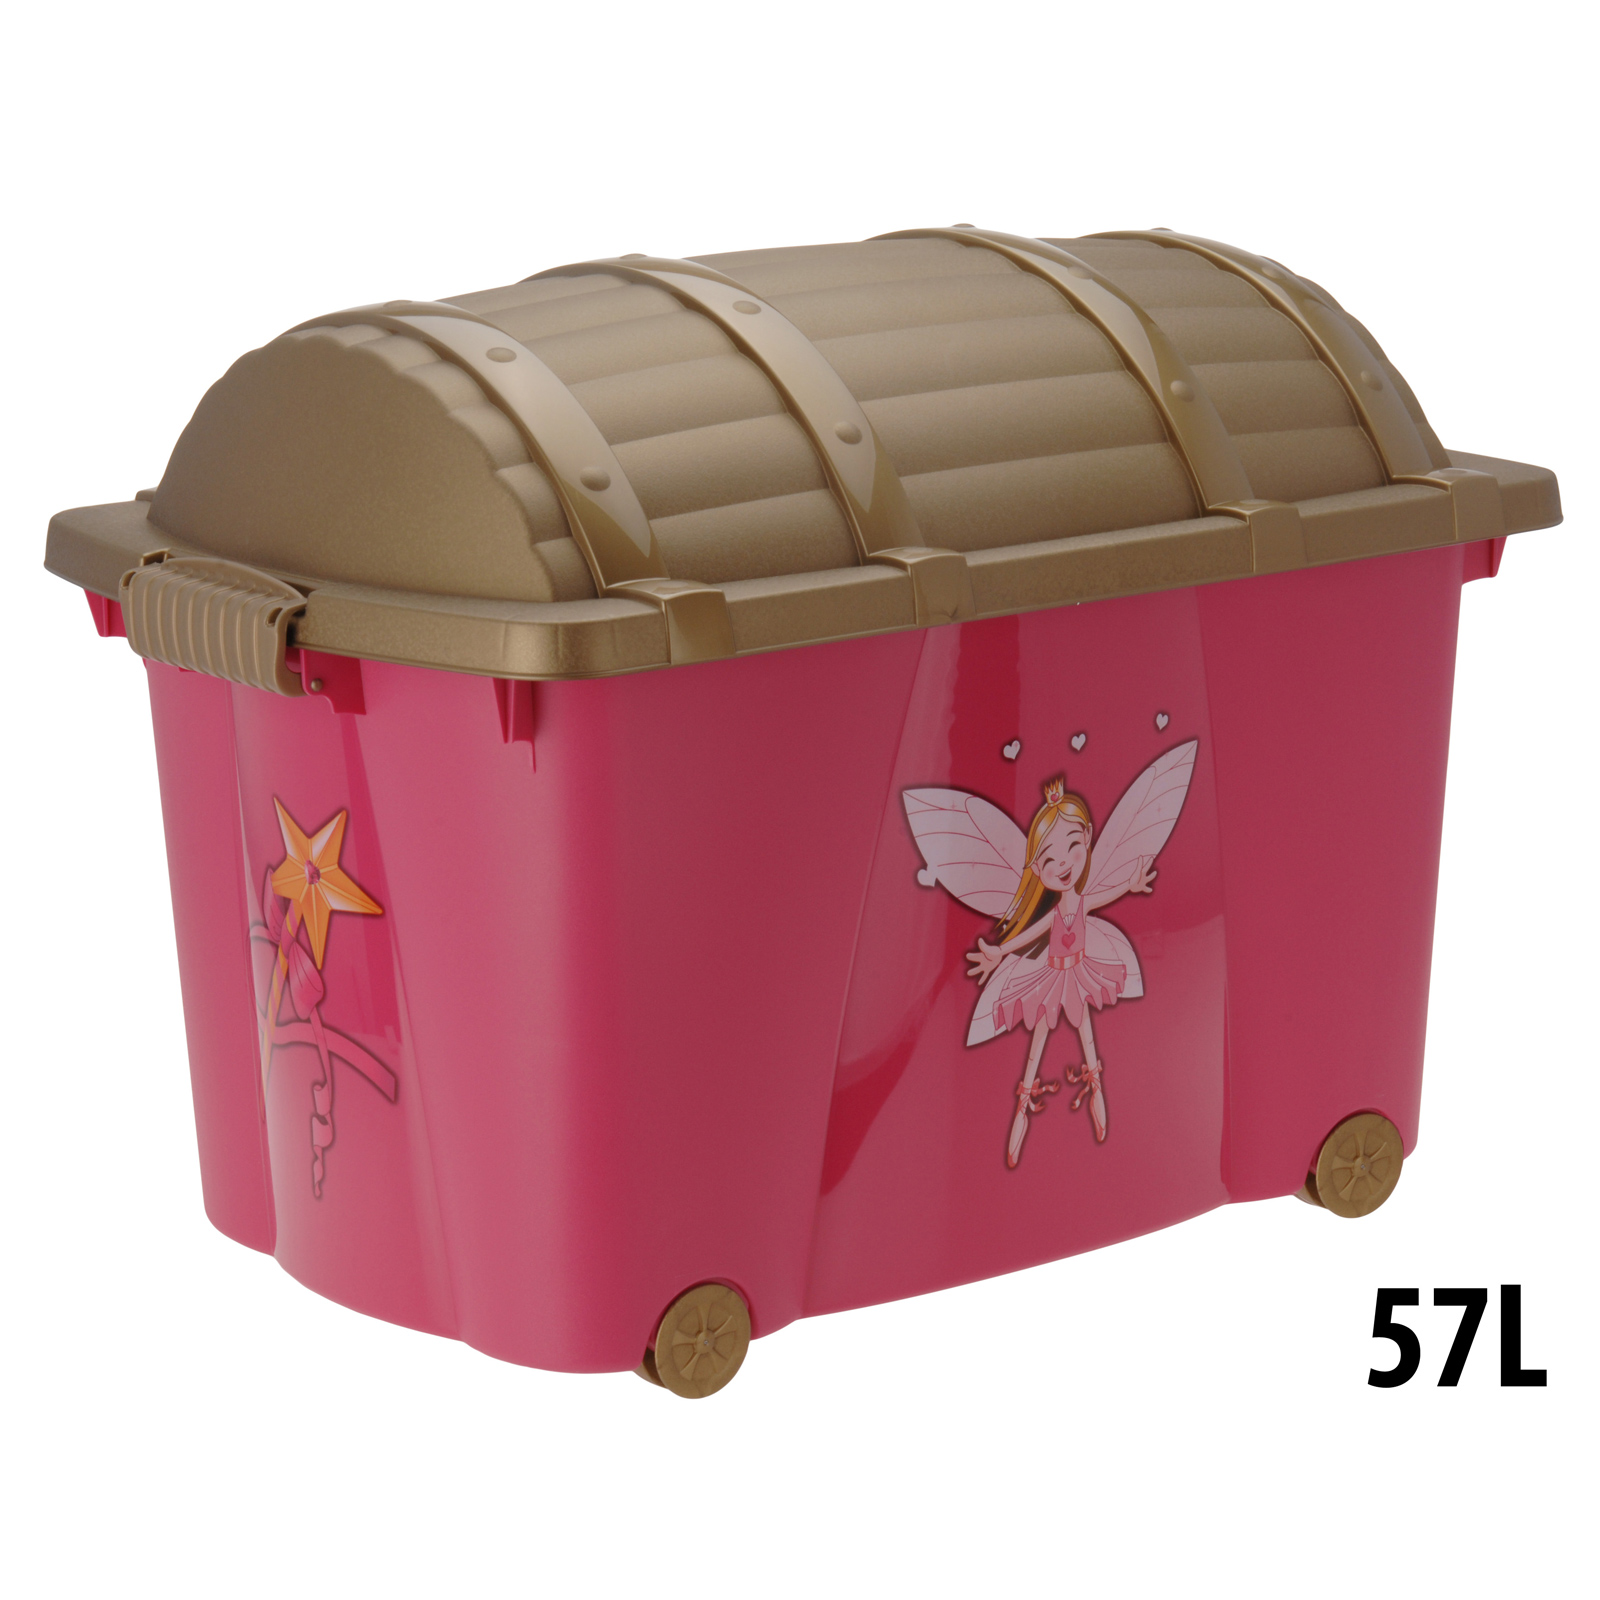 Fairy Childrens Plastic Storage Container Toy Chest Box  sc 1 st  Listitdallas & Plastic Toy Storage - Listitdallas